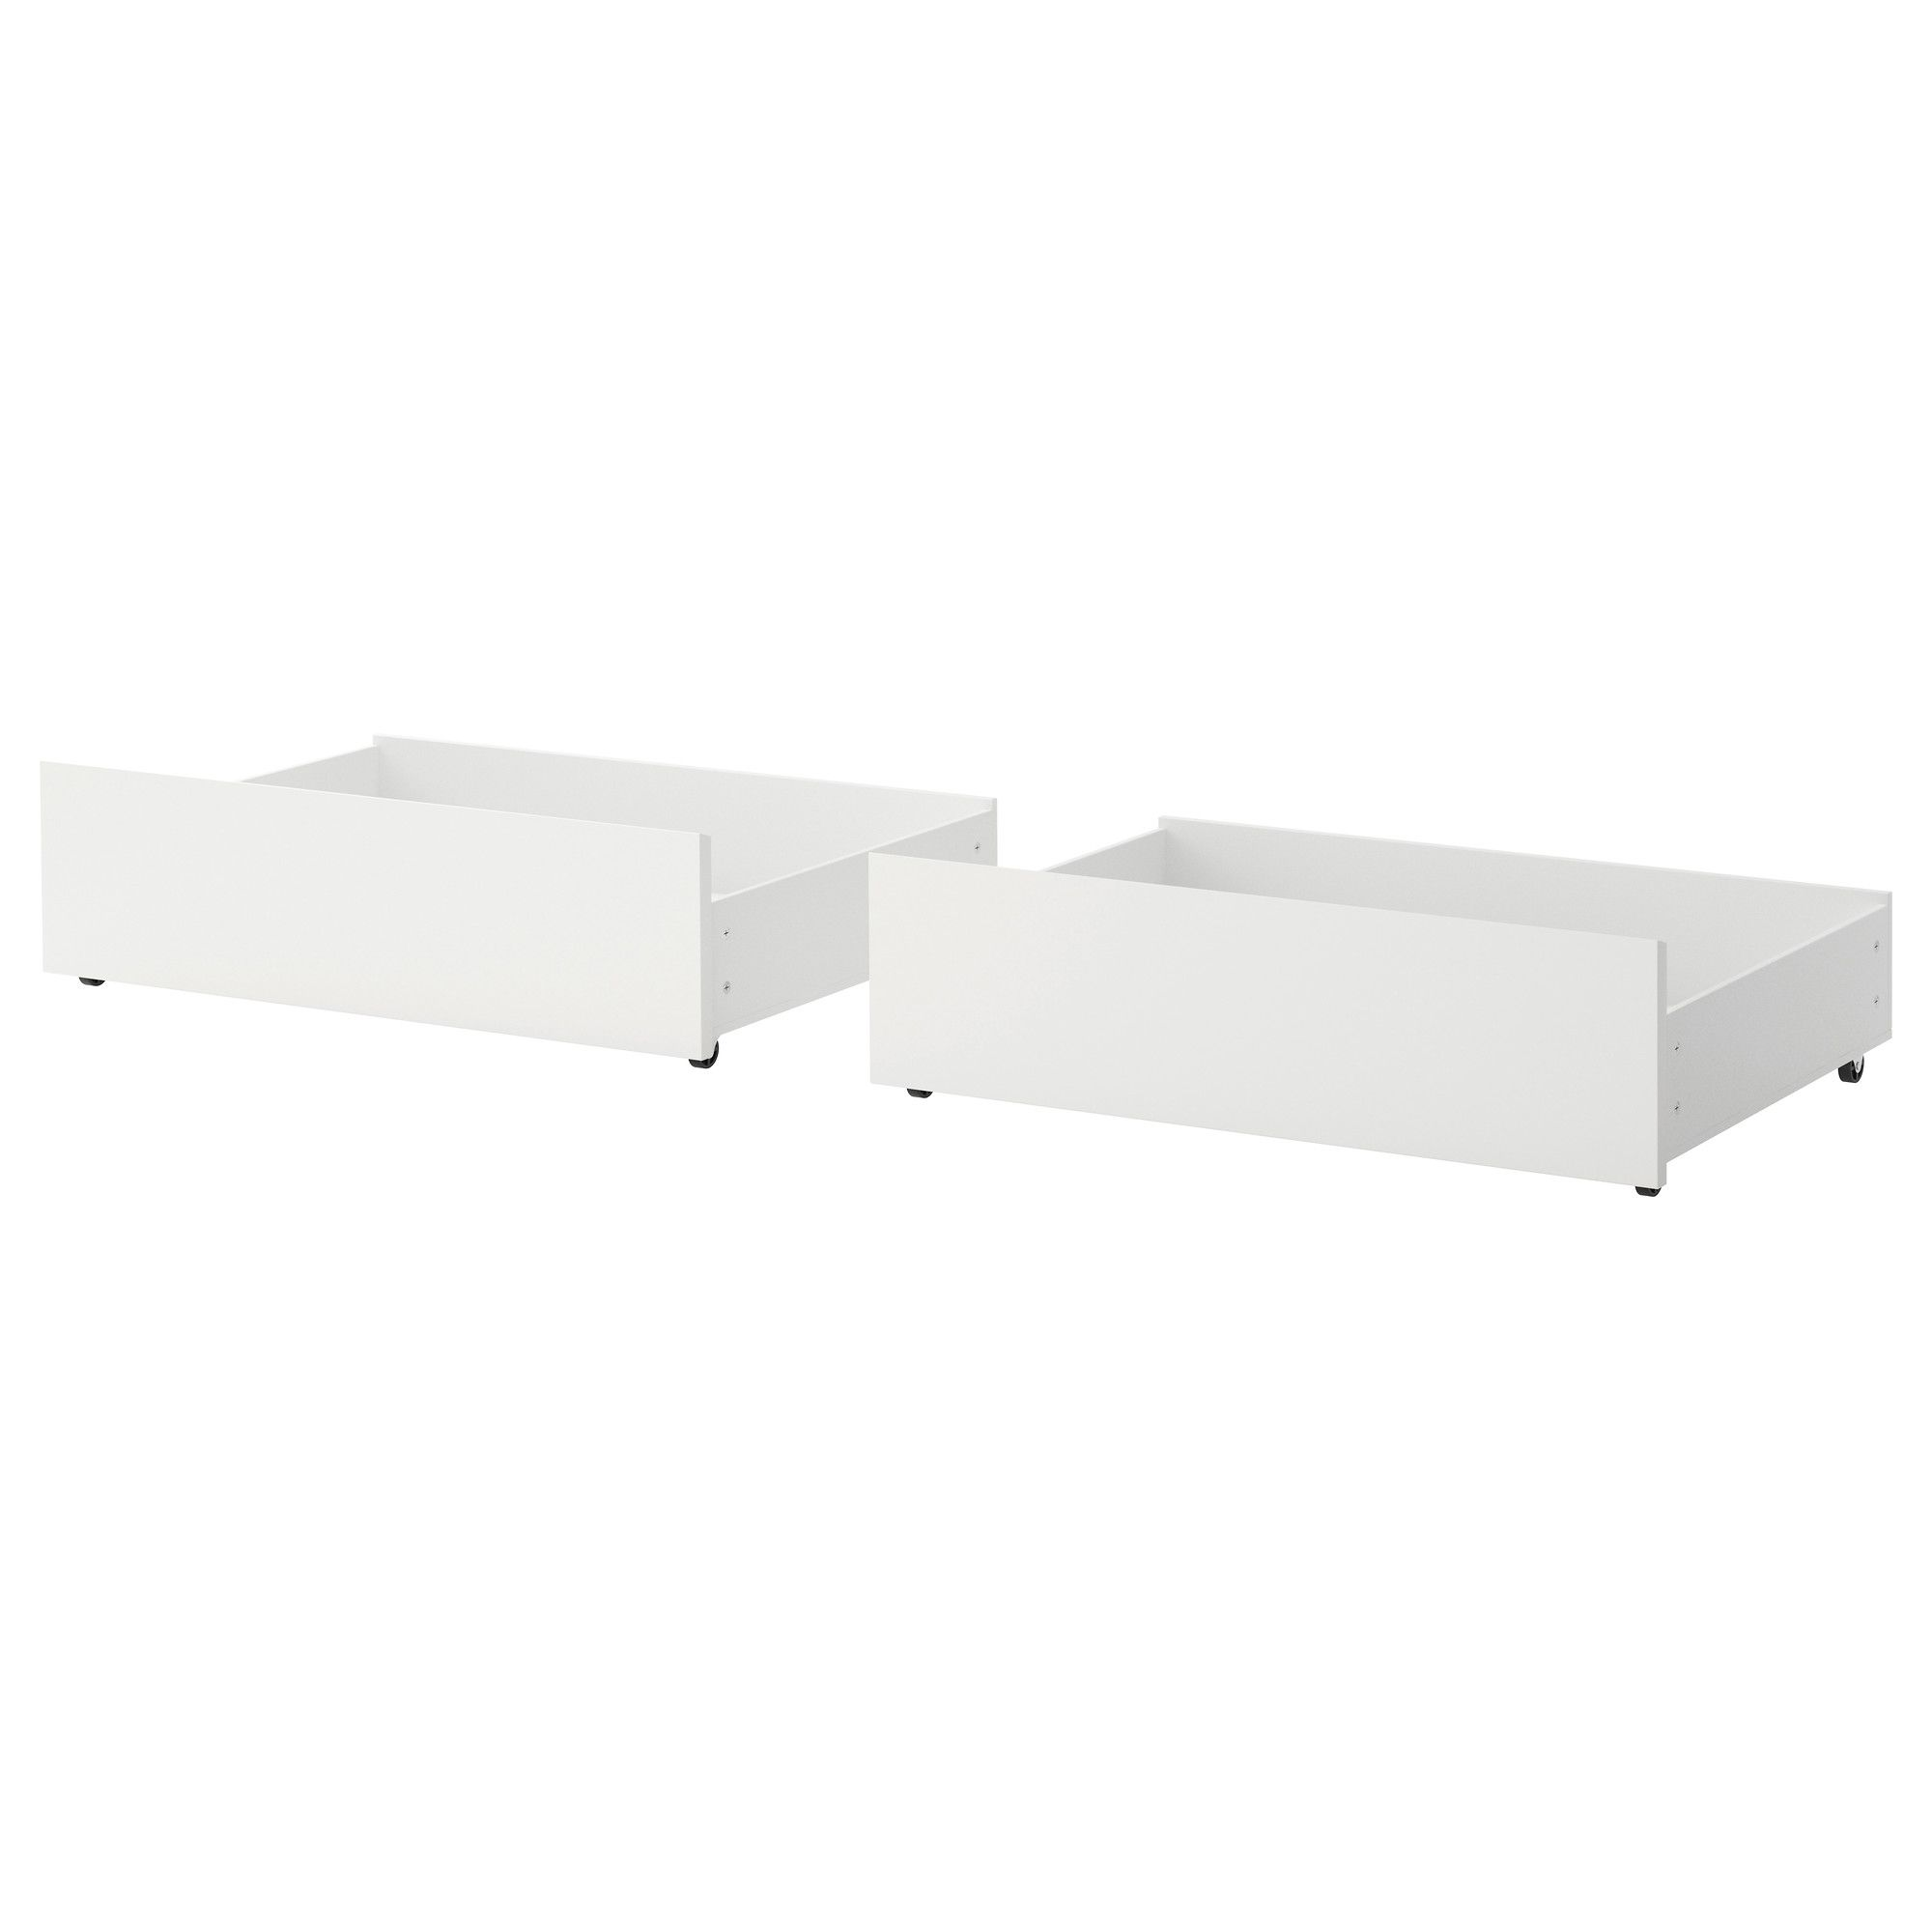 Dekenlade Ikea Malm Underbed Storage Box For High Bed White For The Home